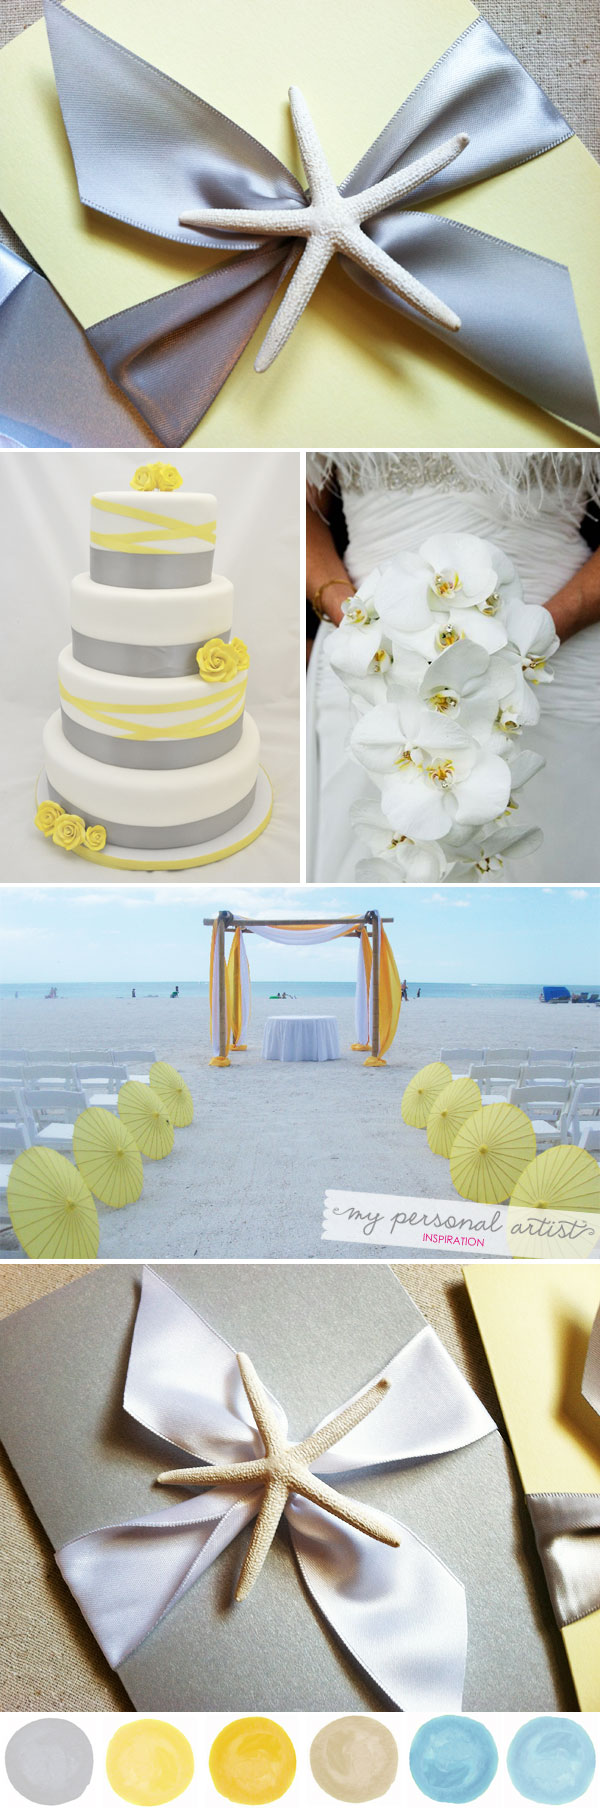 beach wedding ideas yellow and gray